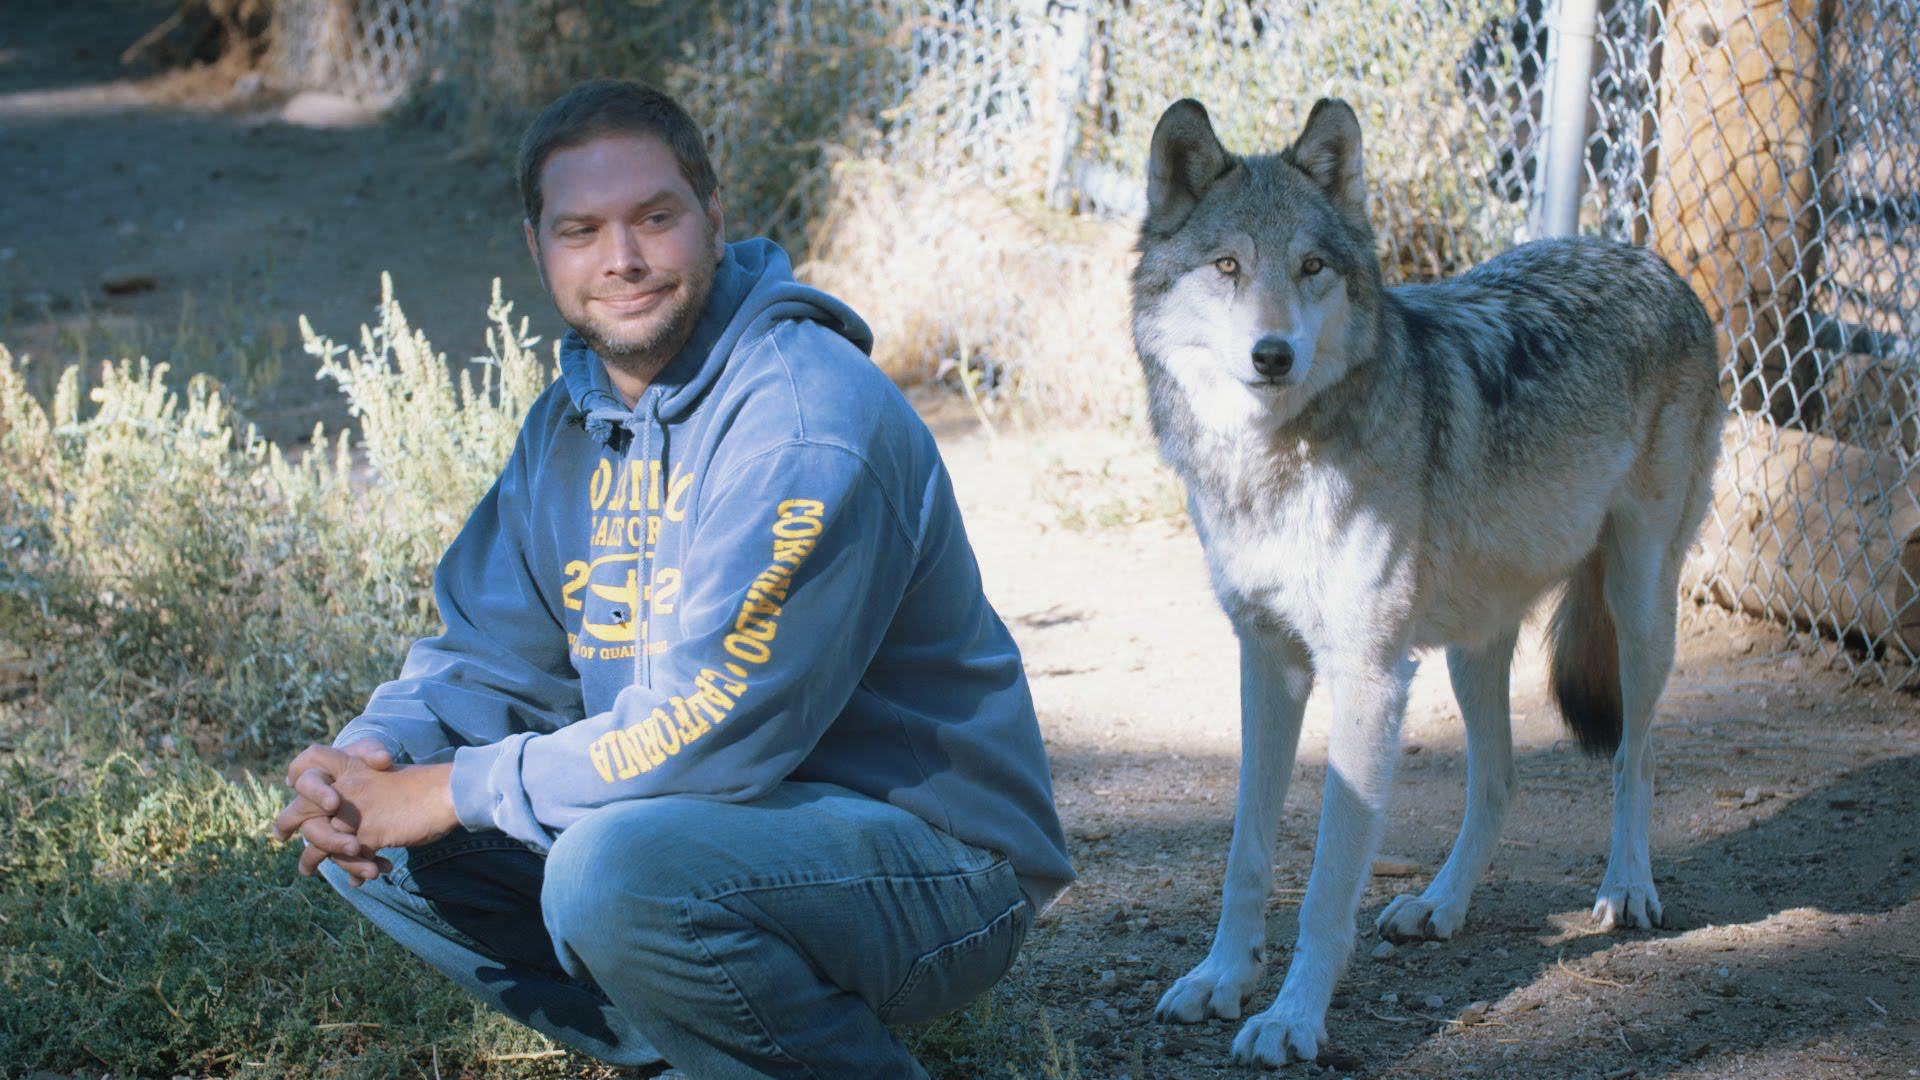 maxresdefault These Wolves Are Helping Veterans With Post Traumatic Stress Disorder Recover